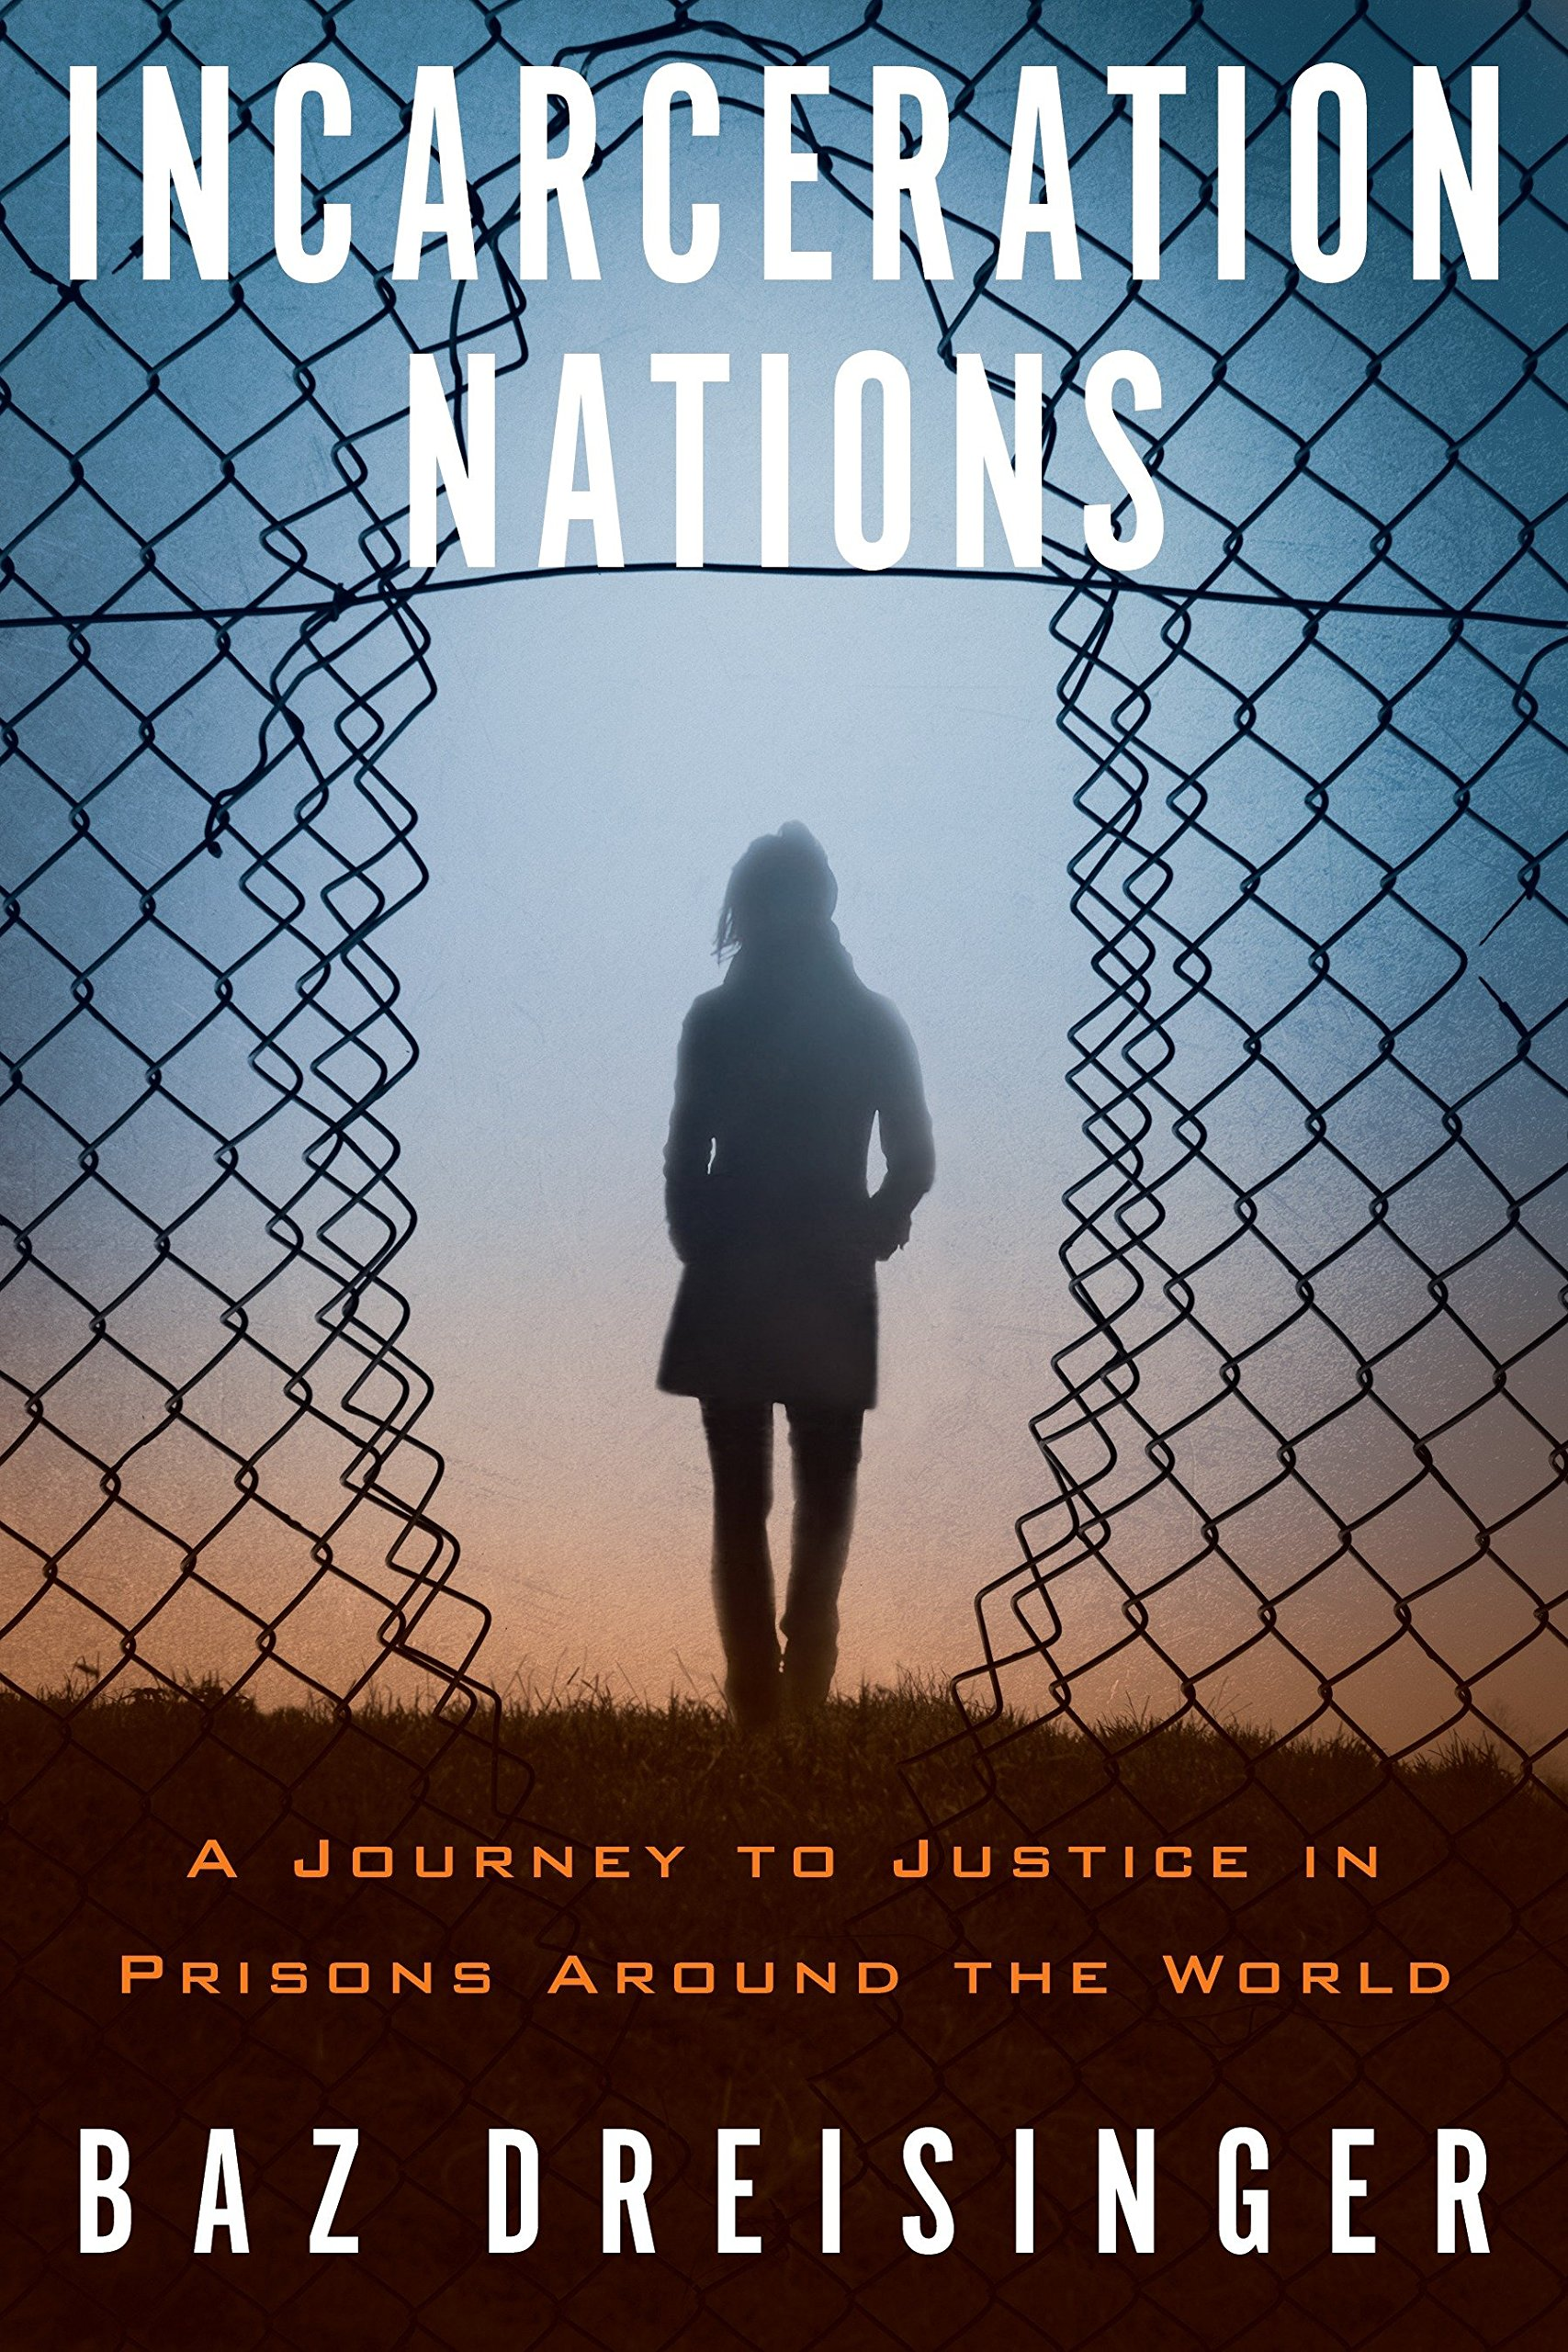 Book cover of Incarceration Nations by Baz Dreisinger